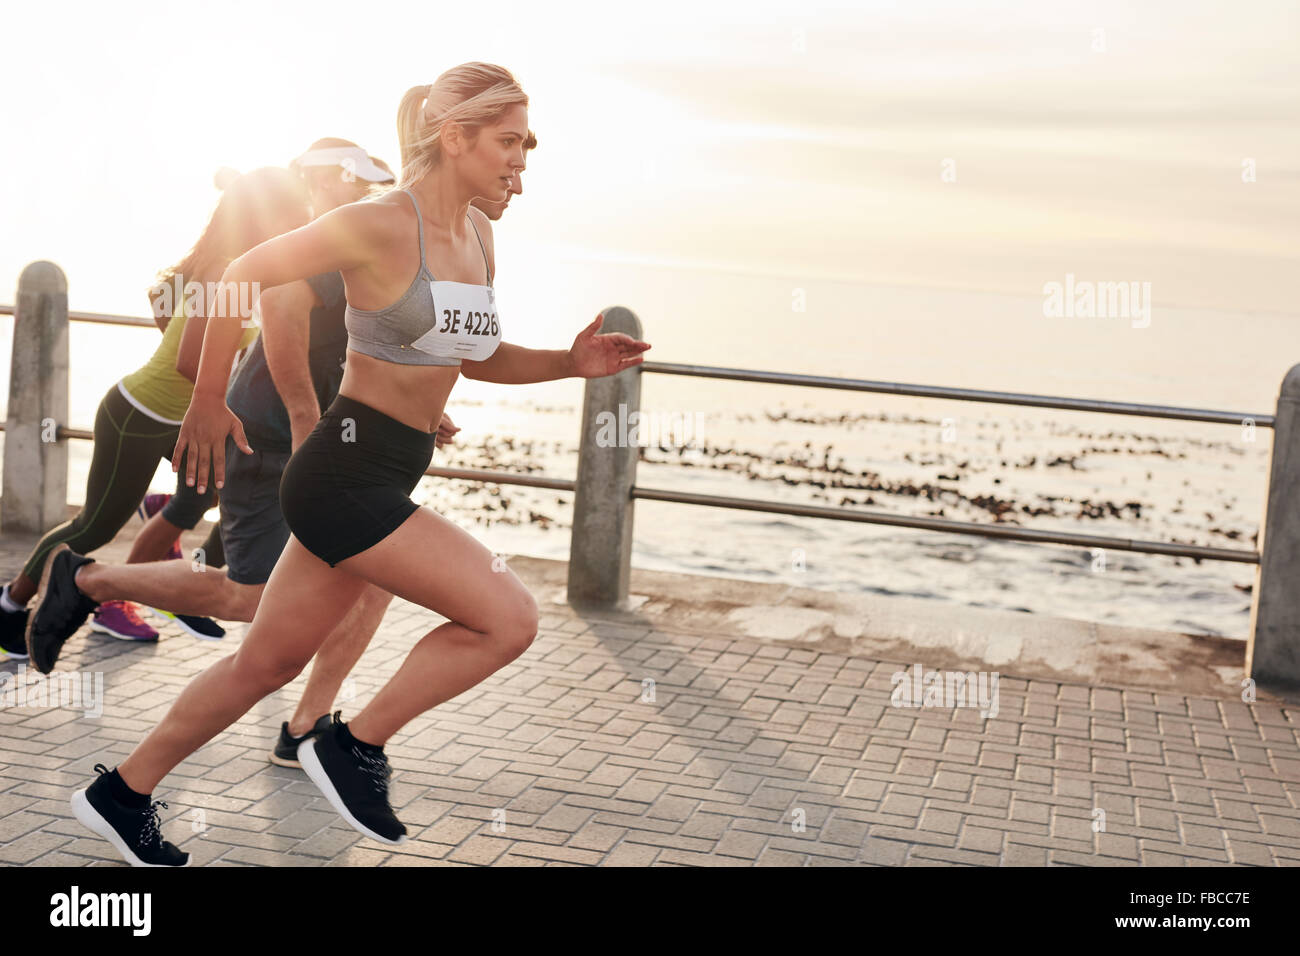 Portrait of young people running on seaside promenade. Group of women running marathon. - Stock Image